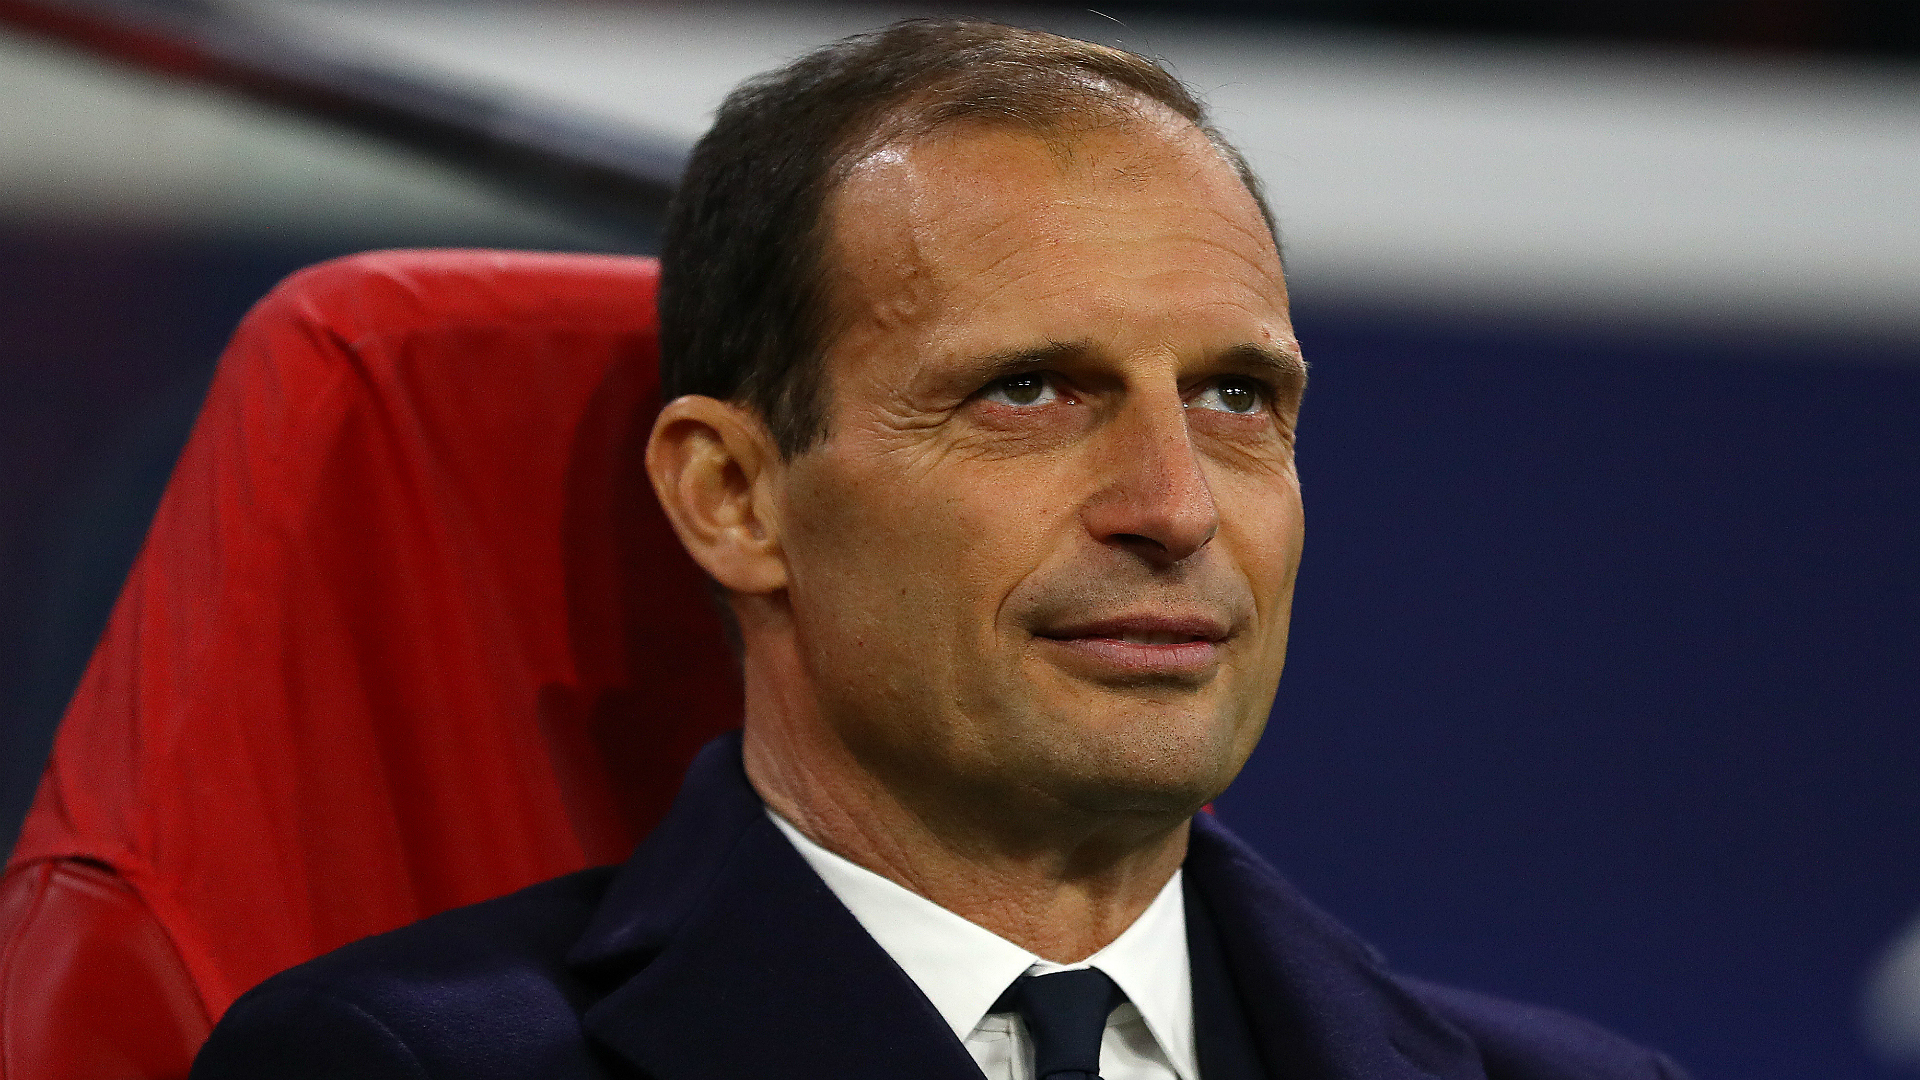 Allegri: I'll stay at Juventus despite Champions League exit